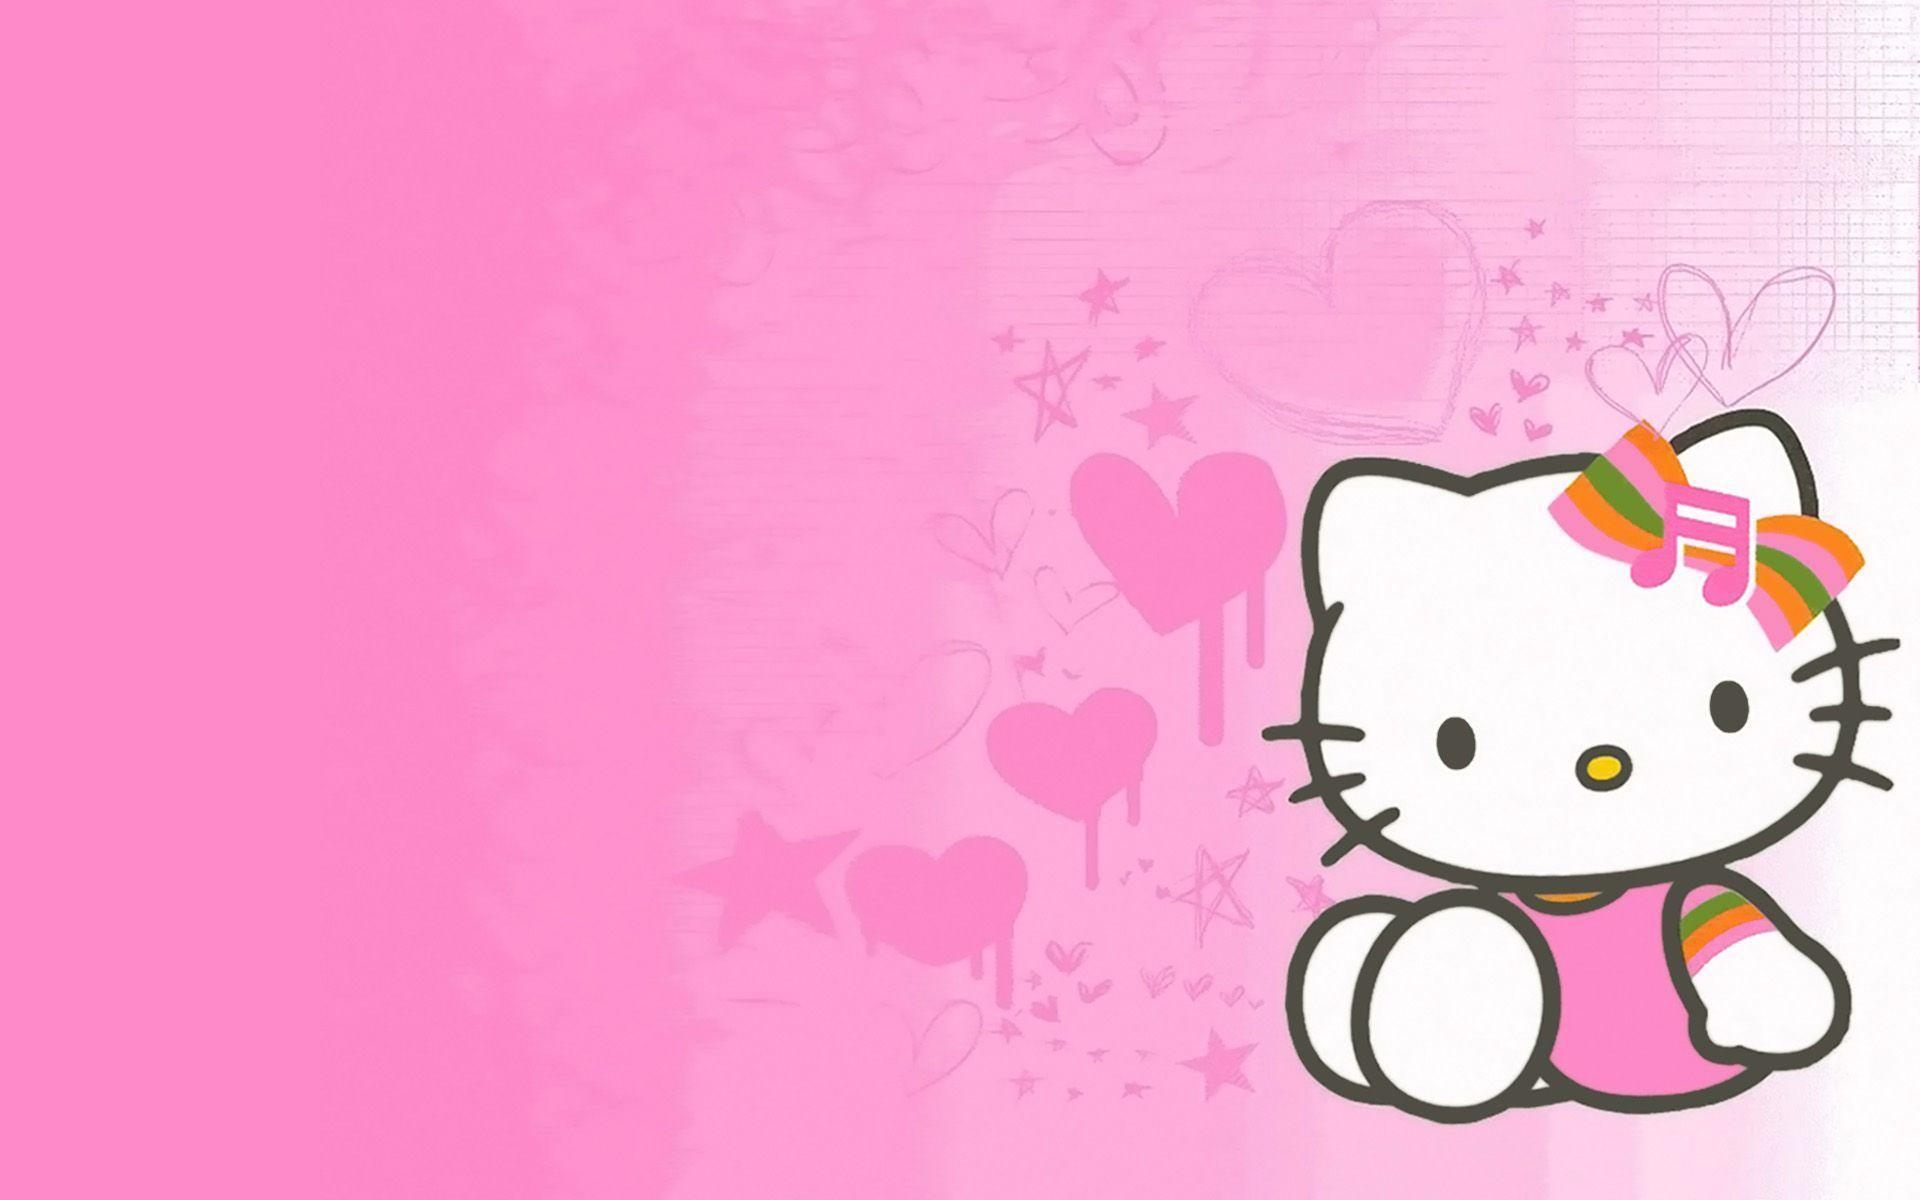 Amazing Wallpaper Hello Kitty Ipad - 32hLZv6  Pictures_829150.jpg